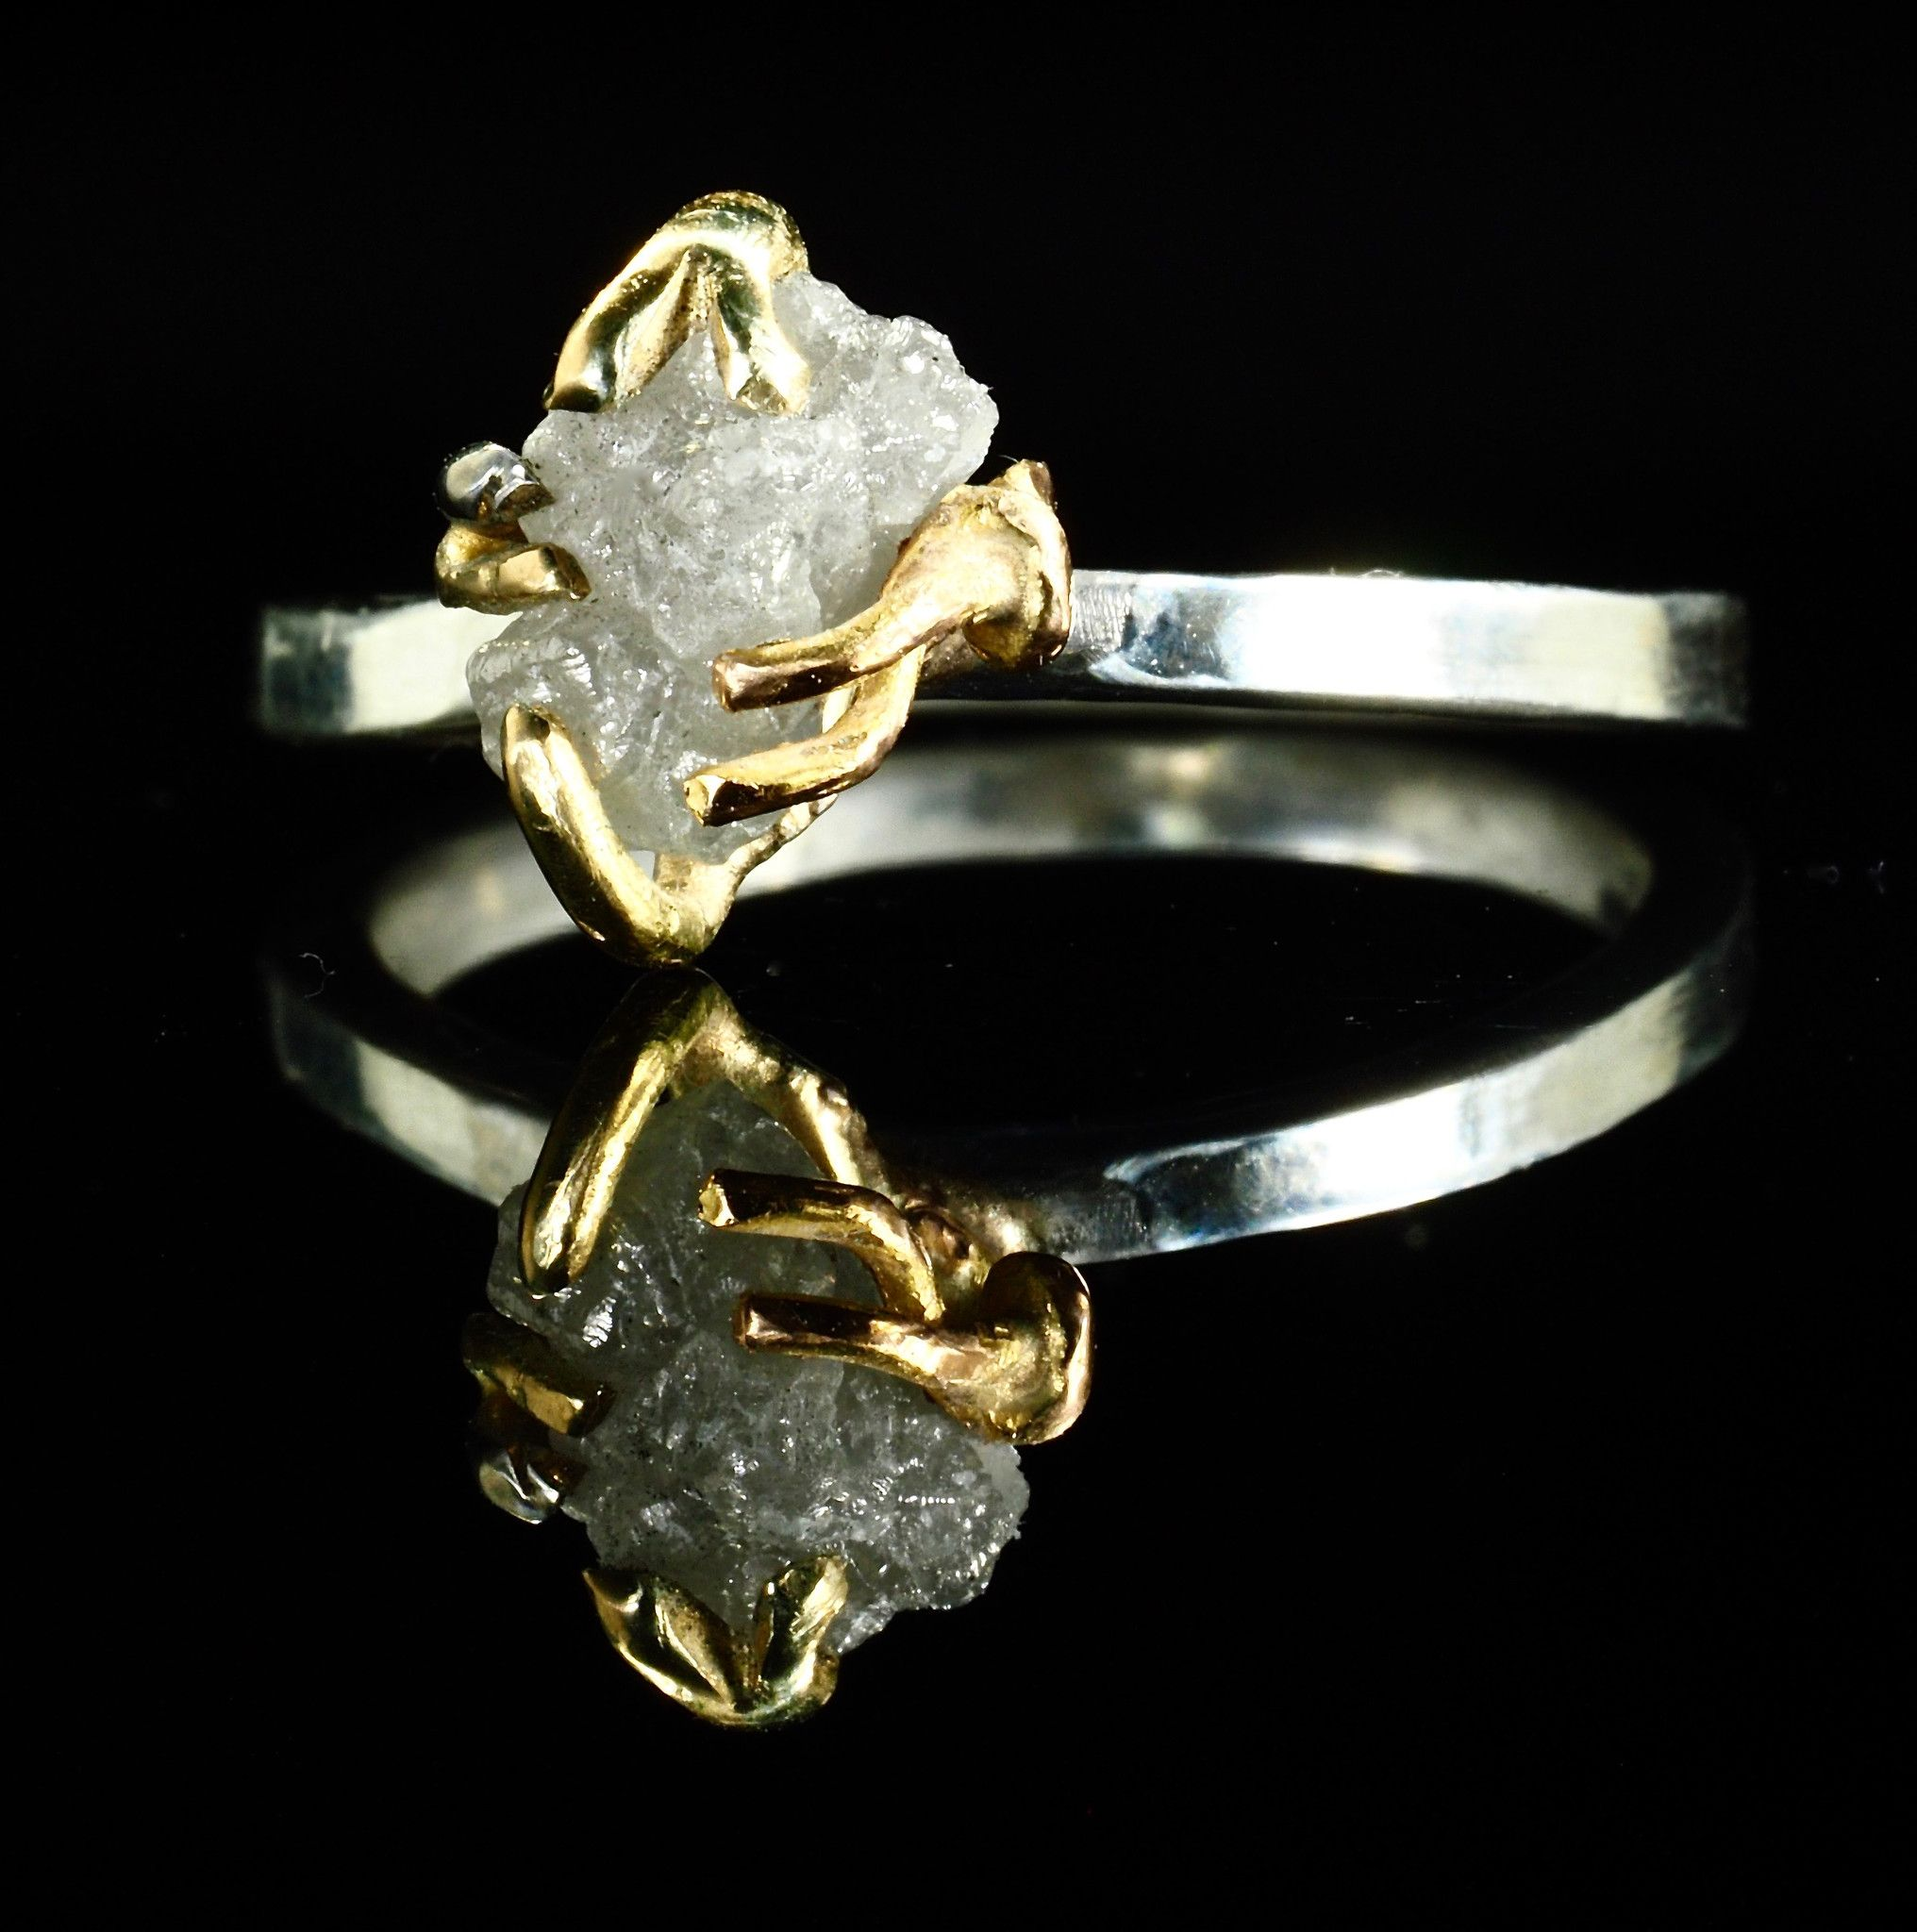 ca muc design oakland mercurius anne conflict edgar in stones custom jewelry wedding rings free